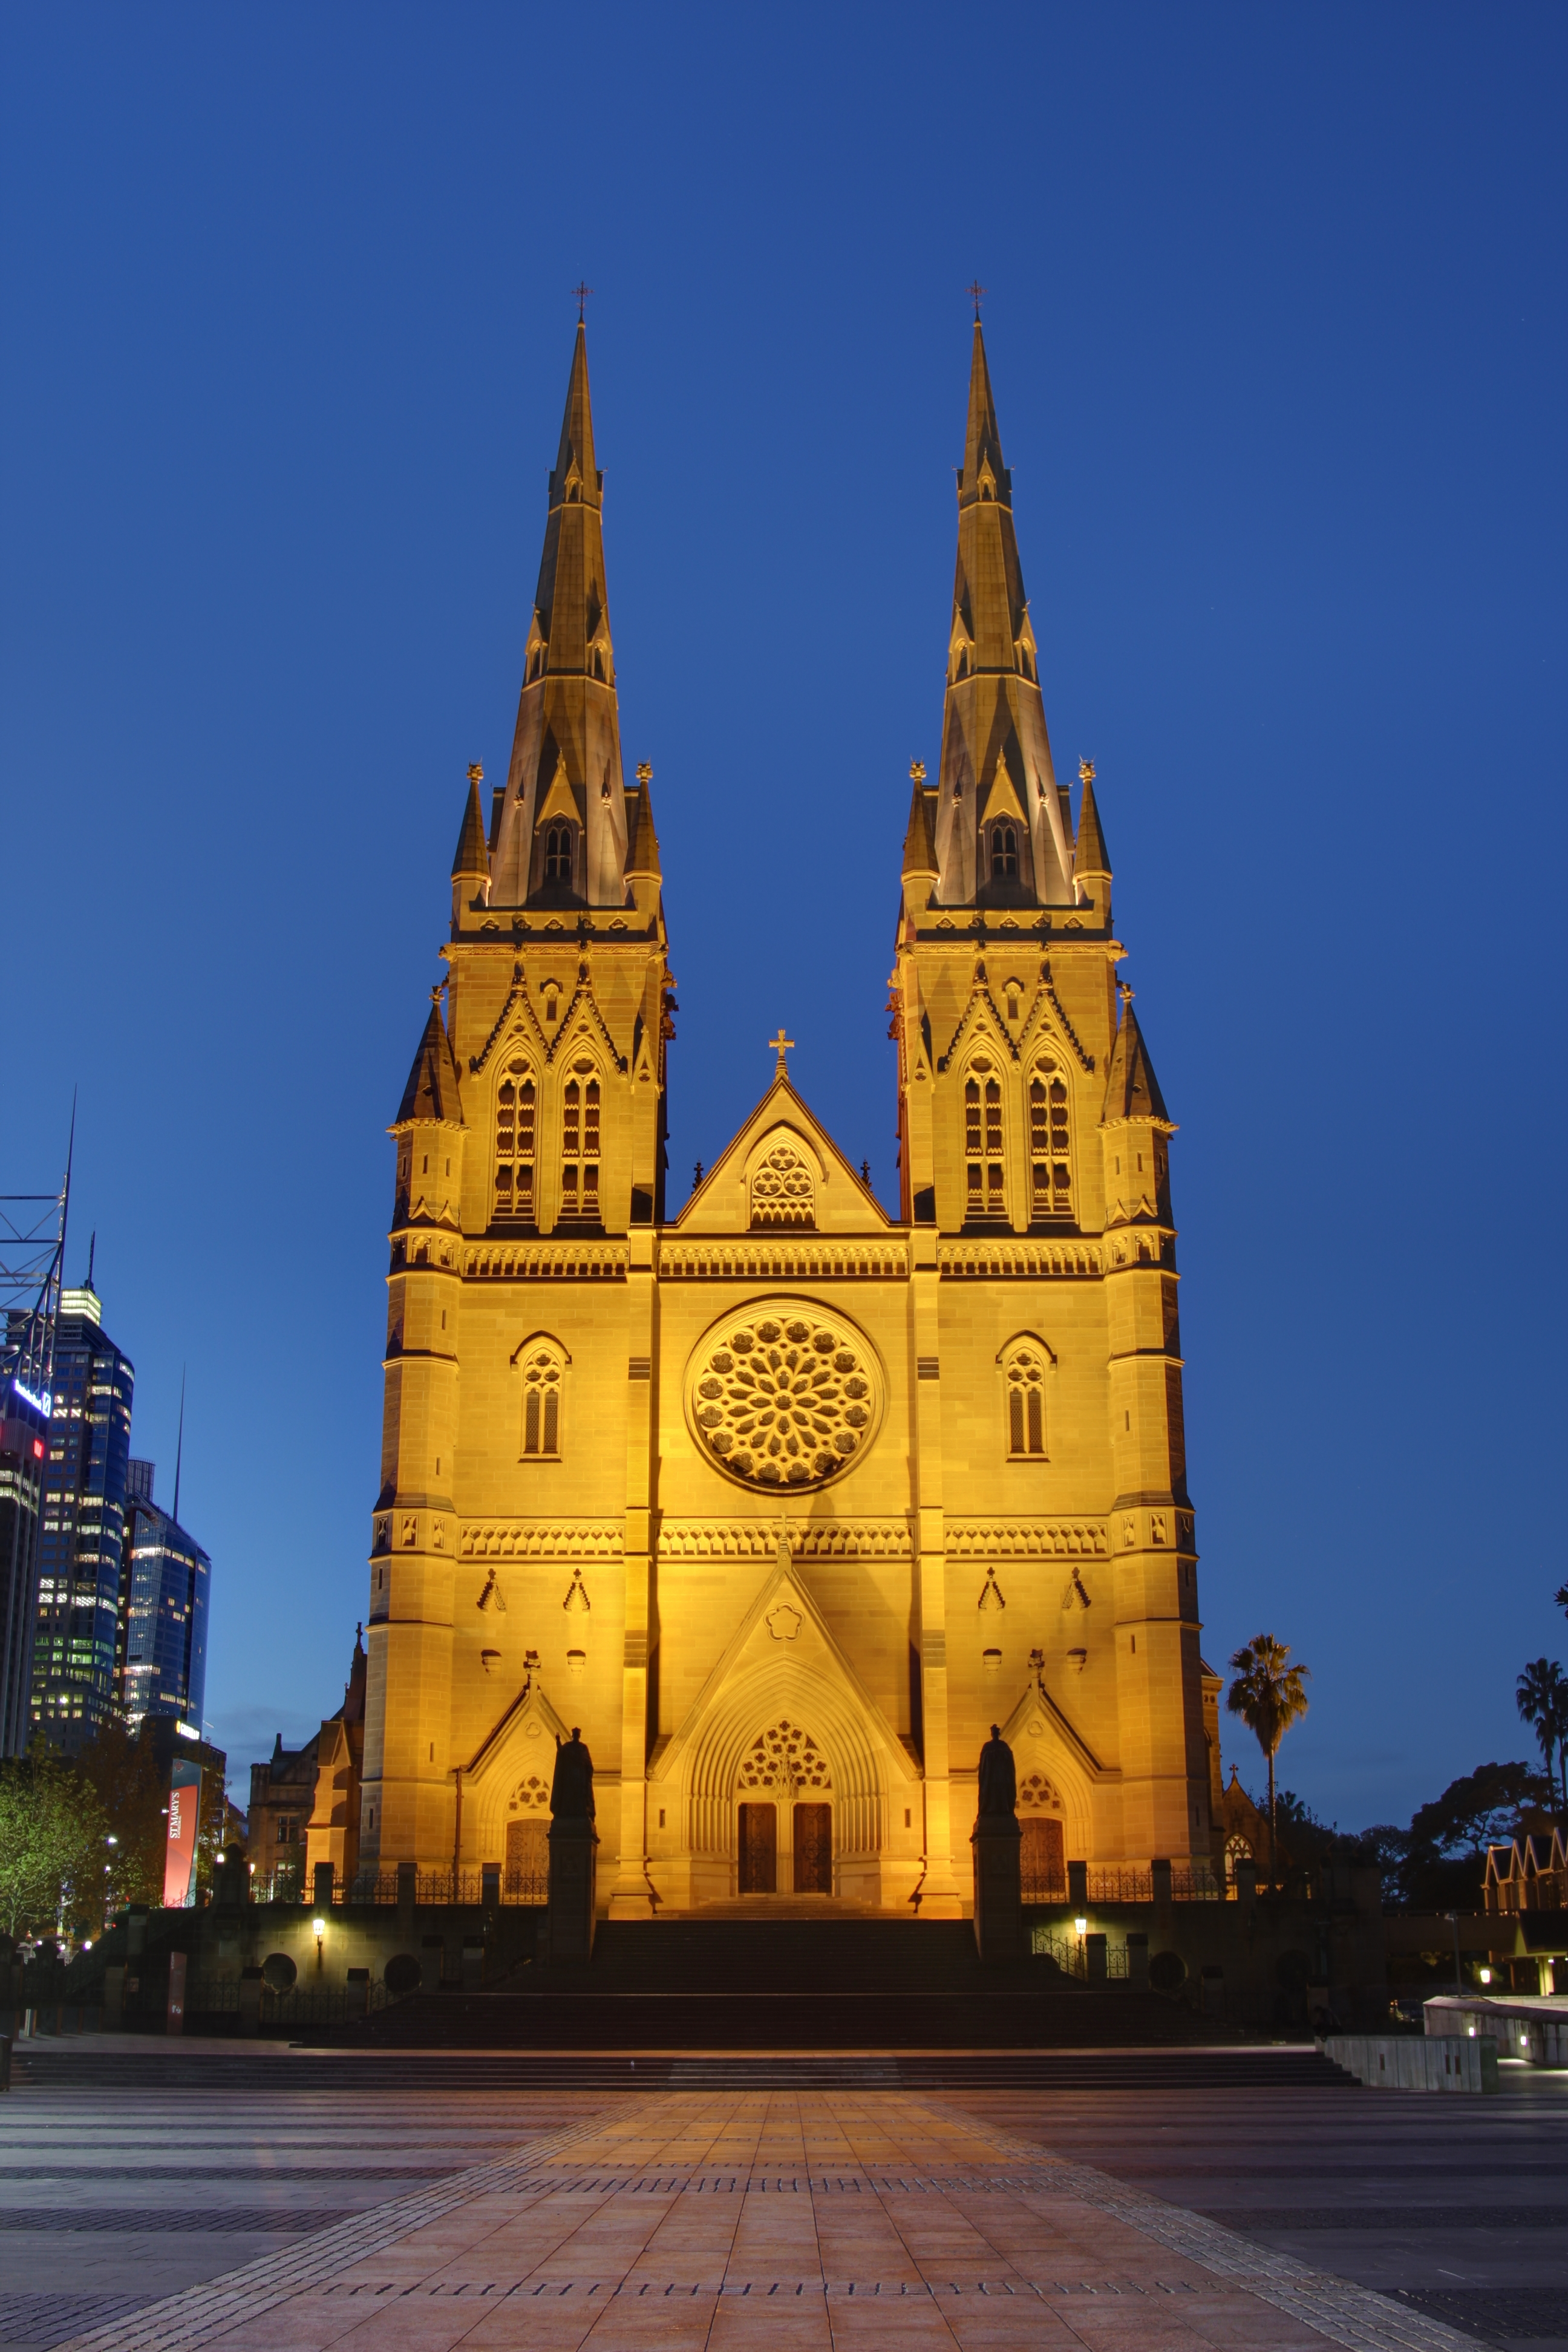 Saint Marys Australia  City new picture : St Mary's Cathedral, Sydney1234 Wikimedia Commons